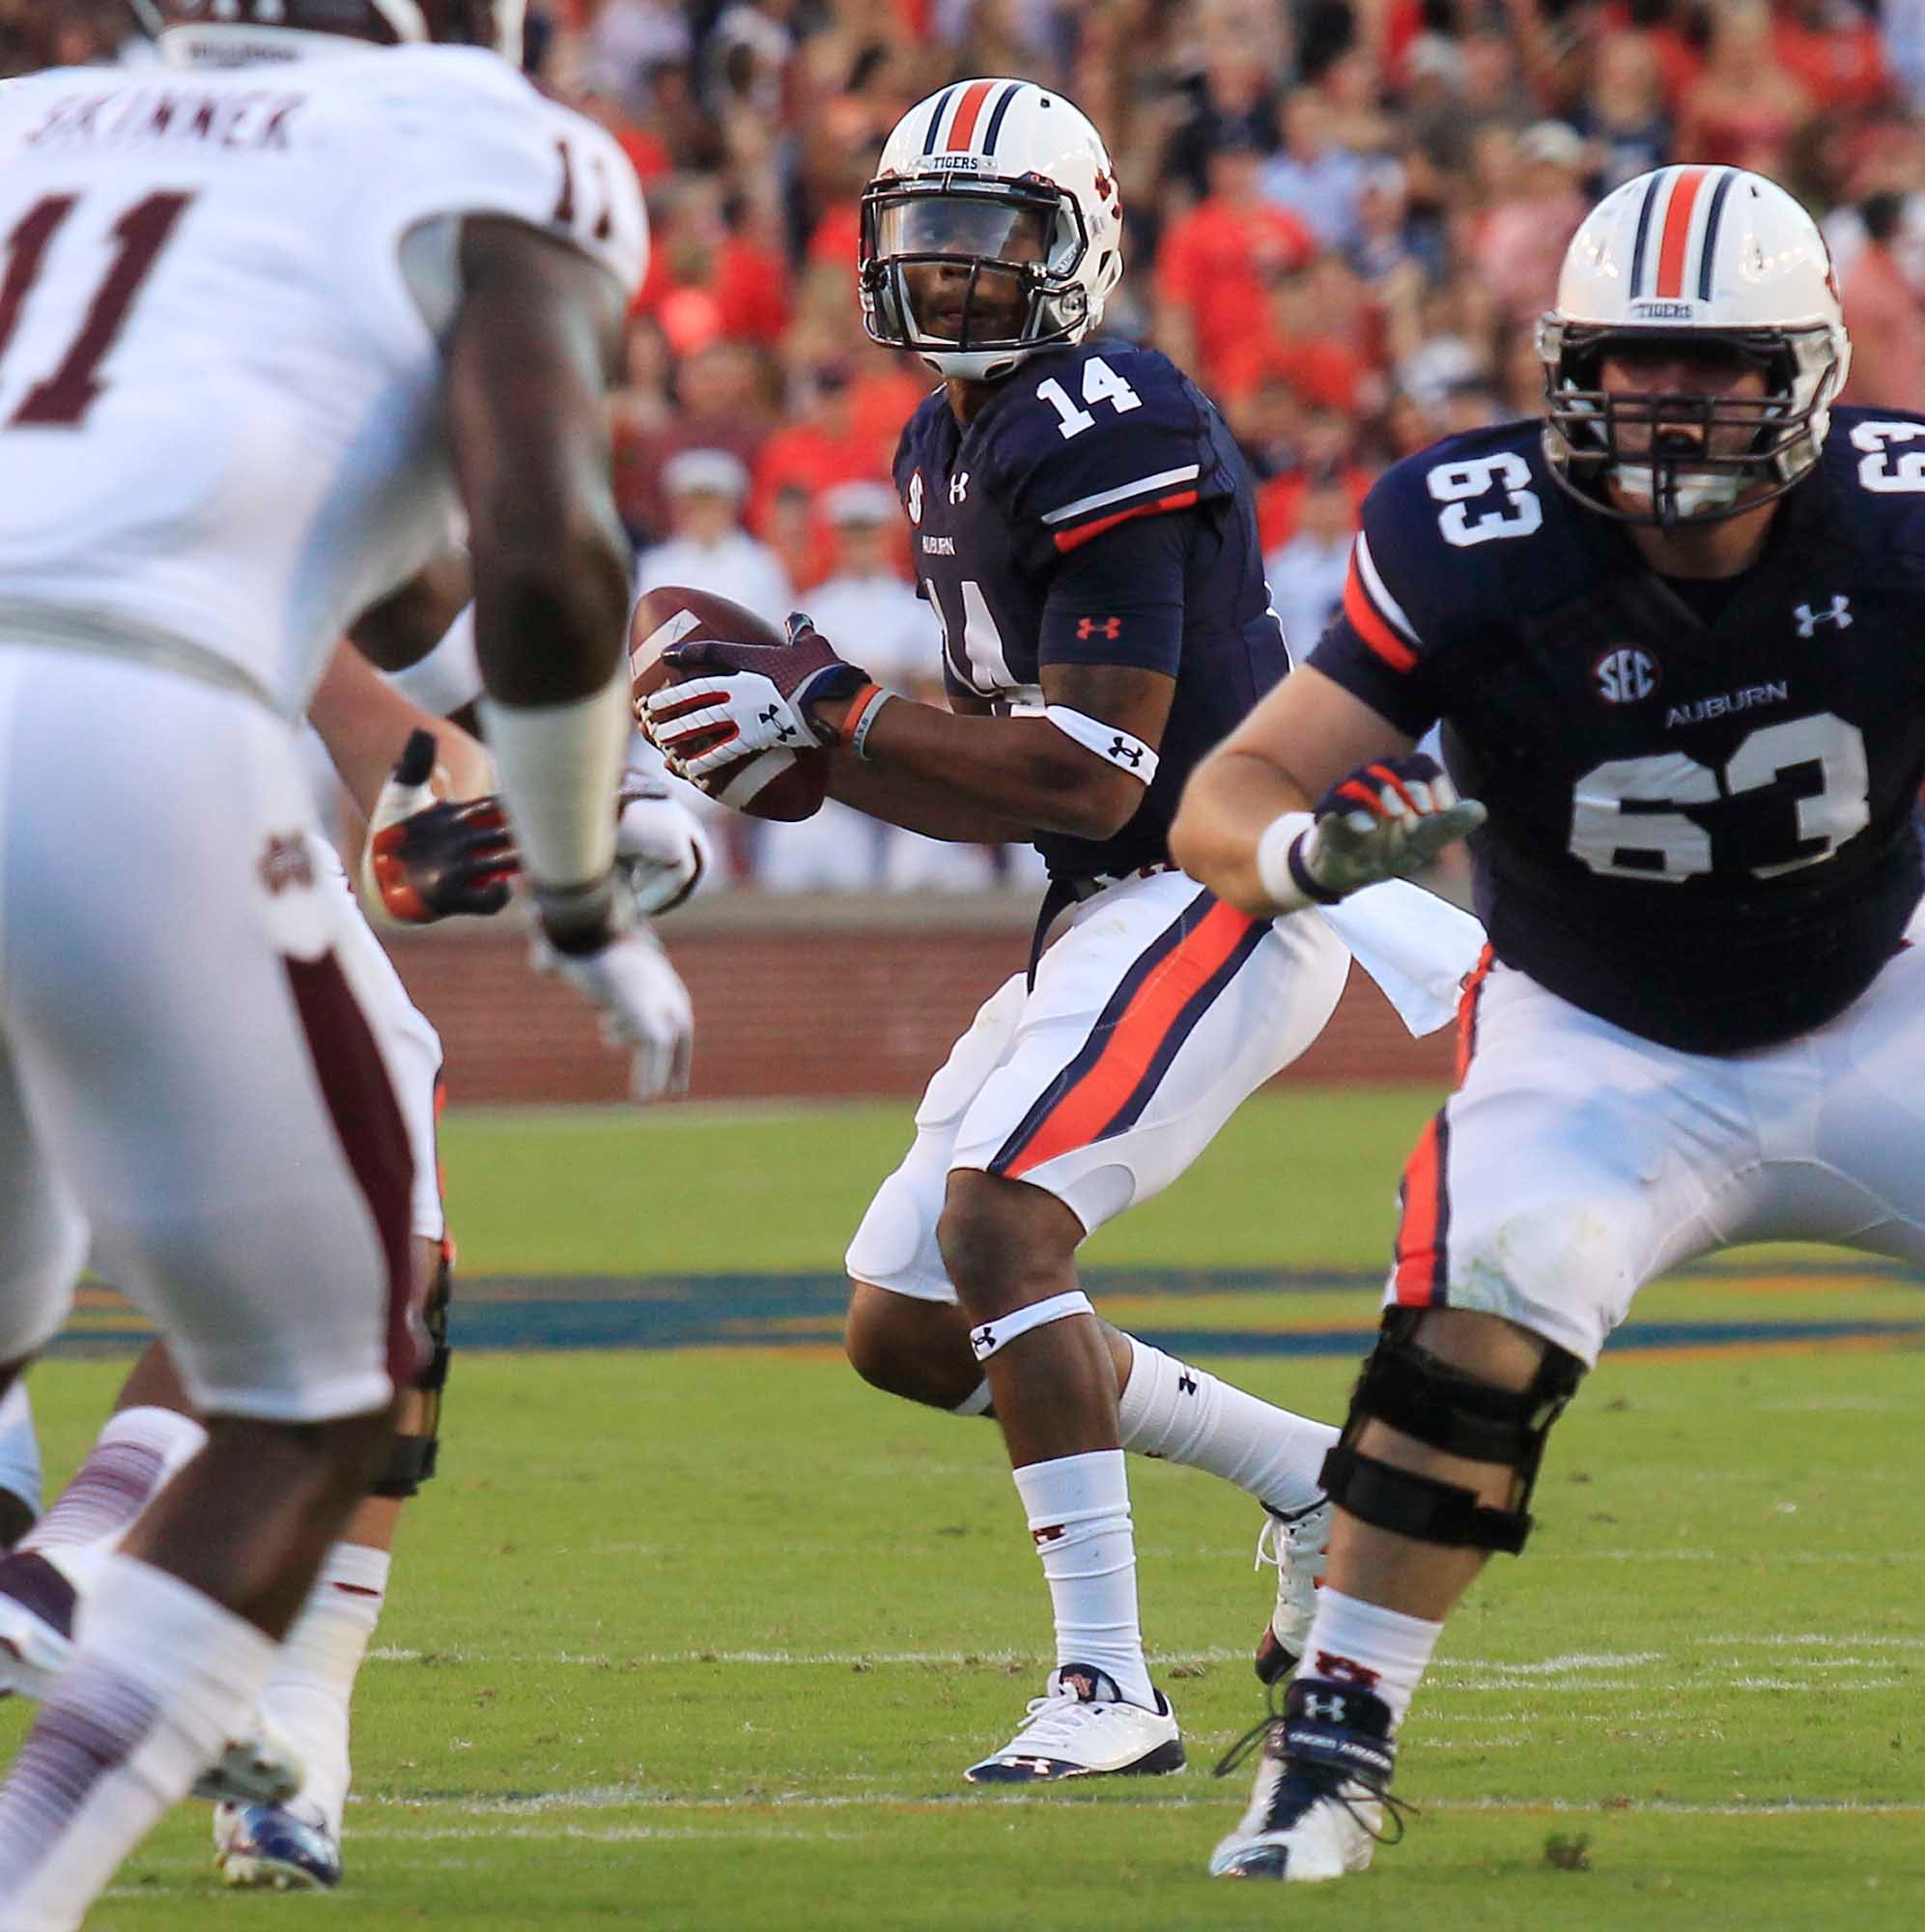 Auburn quarterback Nick Marshall drops back to pass. (Source: Todd van Emst